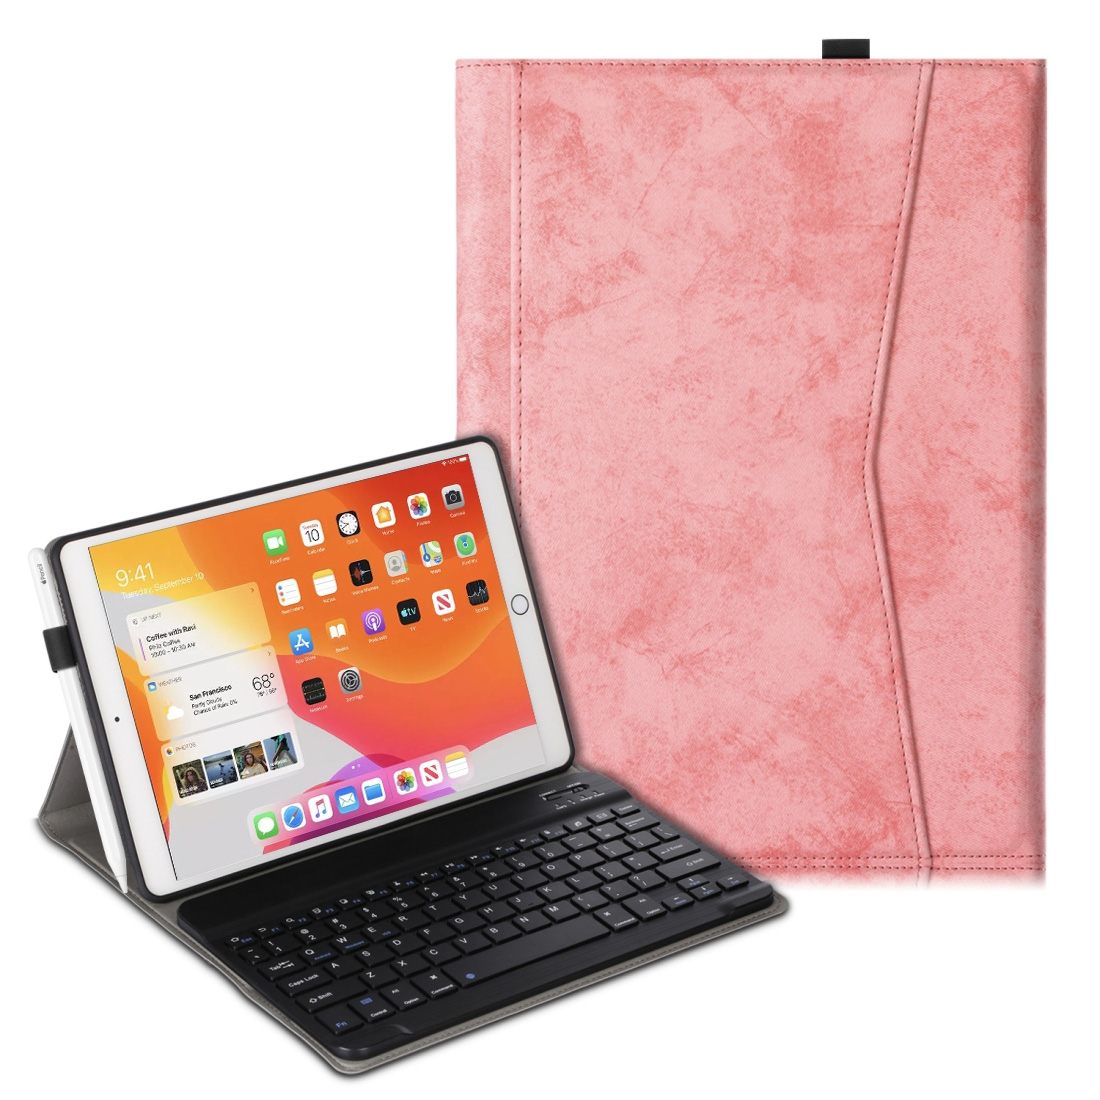 iPad Case With Keyboard & Bluetooth For iPad 10.2 Inch, Leather Case & Backlit Keyboard (Pink)